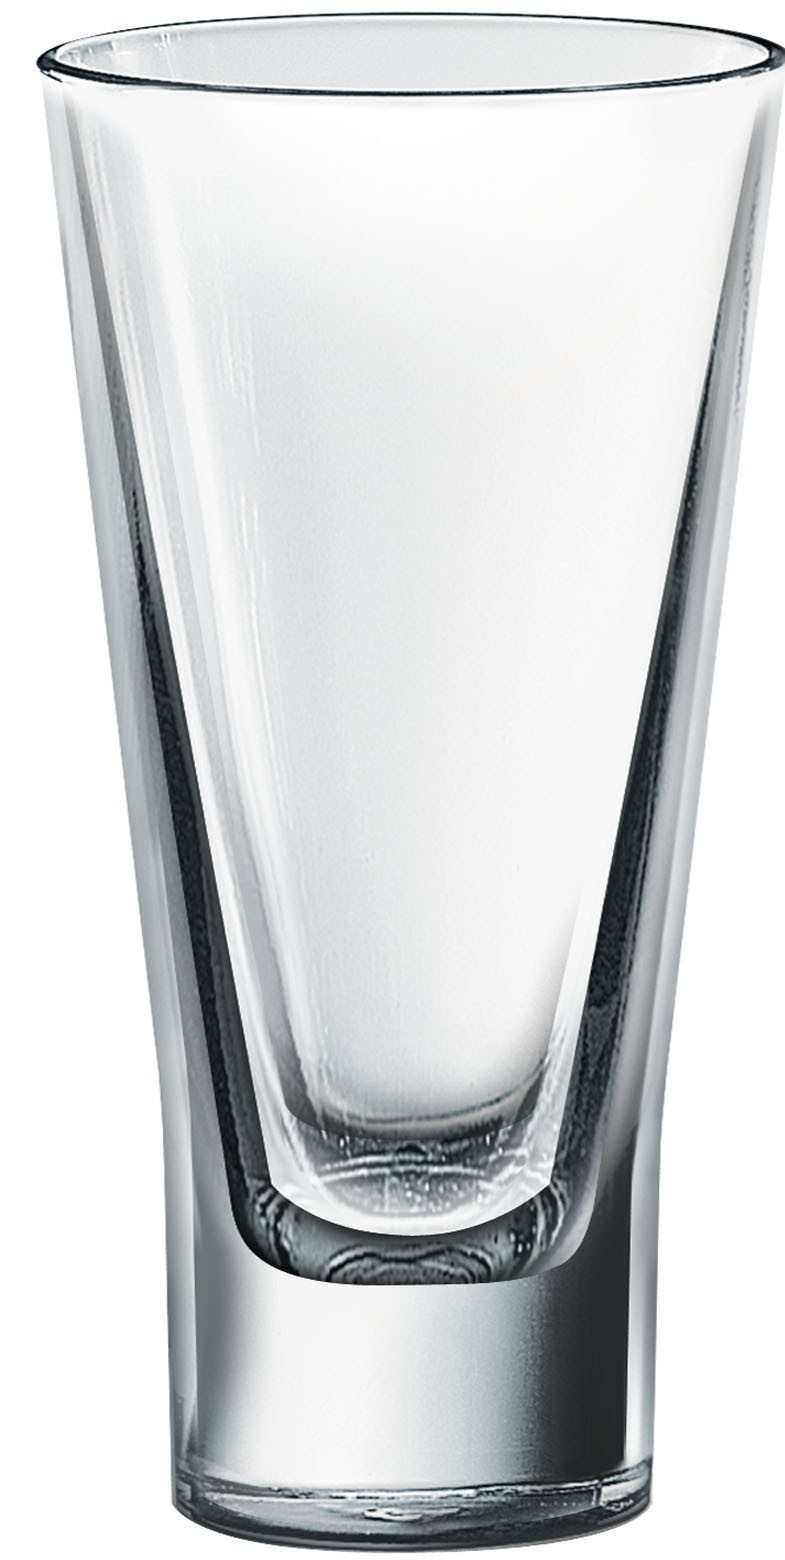 Range Glass Tumbler